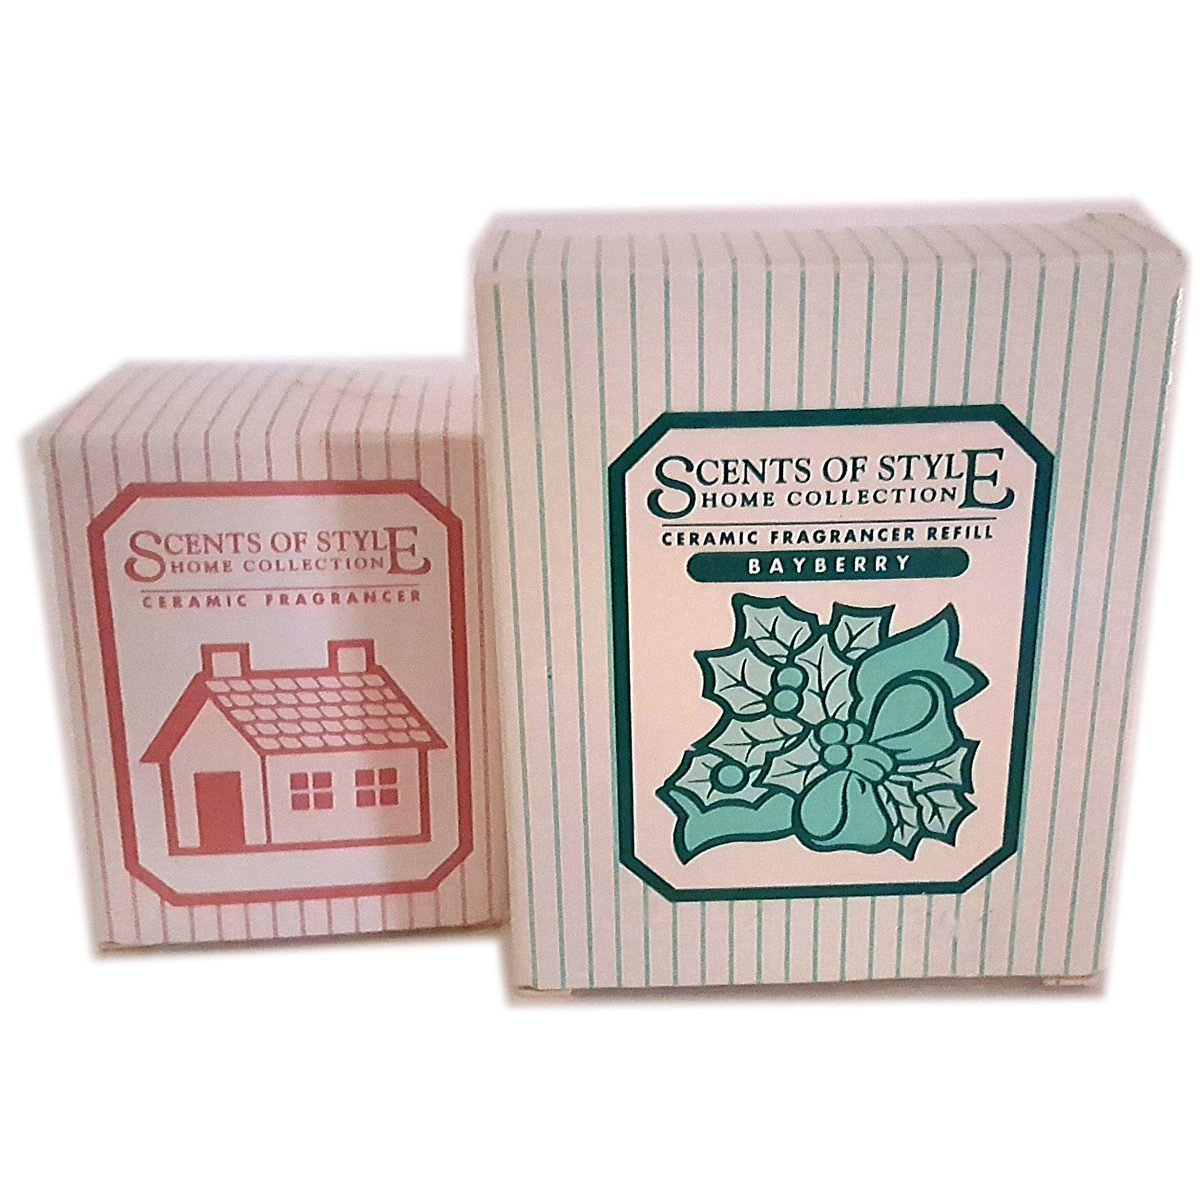 Get Quotations 1993 Avon Scents Of Style Home Collection Ceramic Fragrancer Plus 1 Refill Bayberry